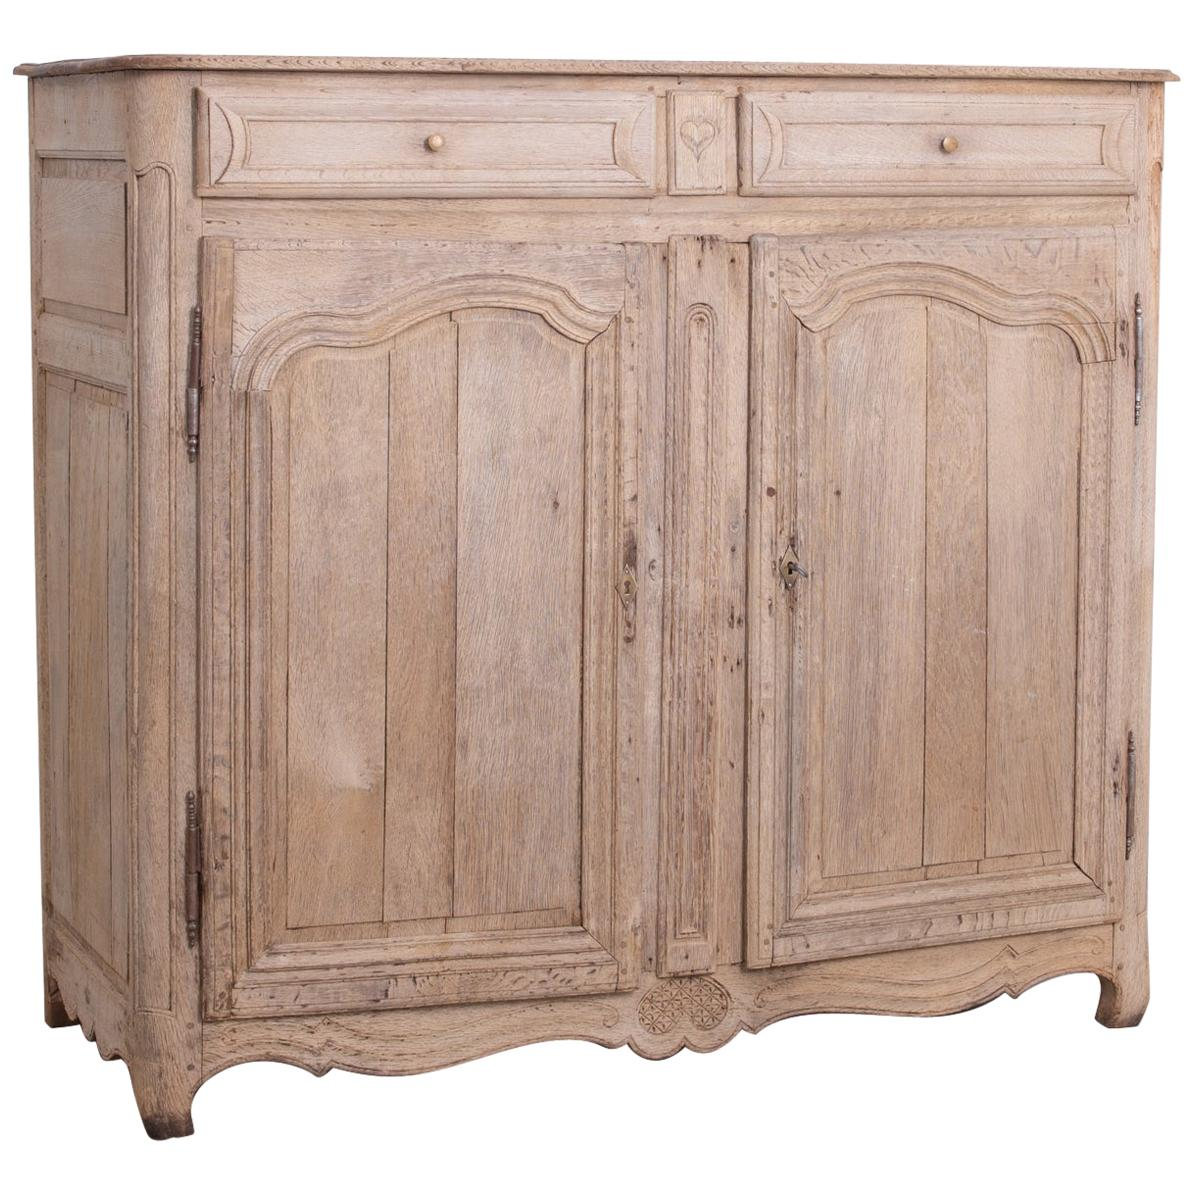 Late 19th Century French Heart Bleached Oak Buffet